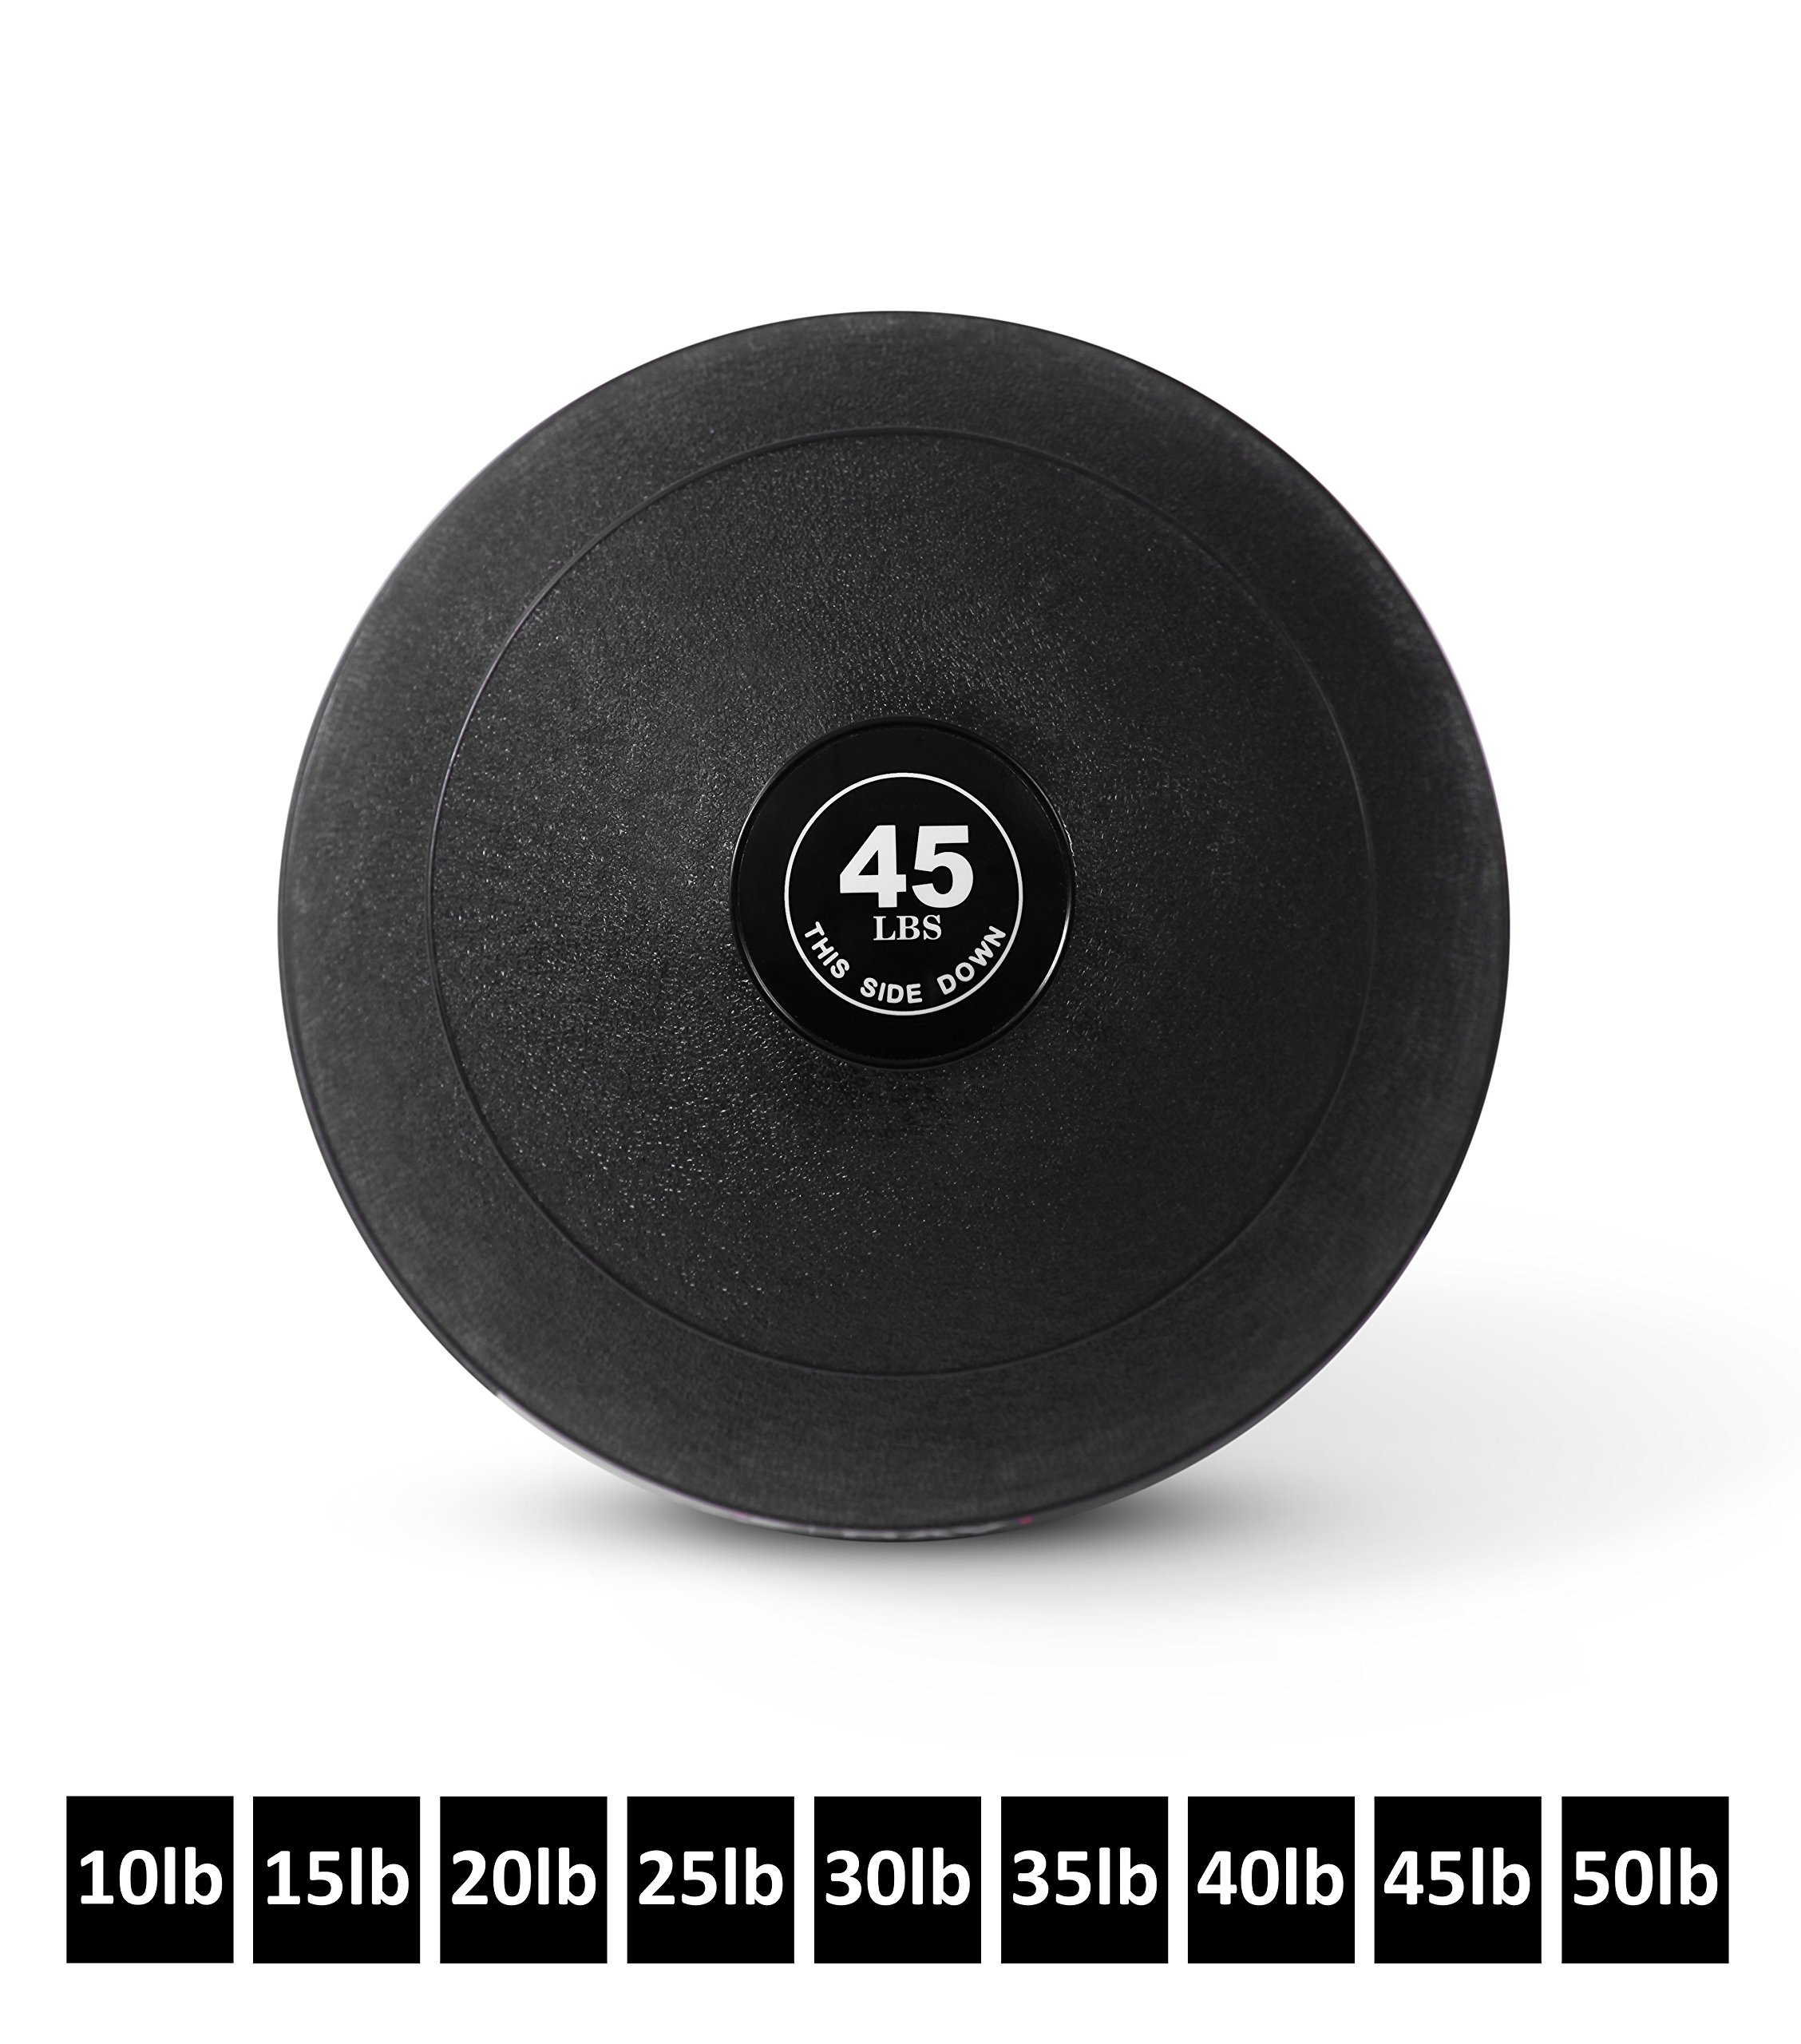 Weighted Slam Ball by Day 1 Fitness - 45 lbs - No Bounce Medicine Ball - Gym Equipment Accessories for High Intensity Exercise, Functional Strength Training, Cardio, CrossFit